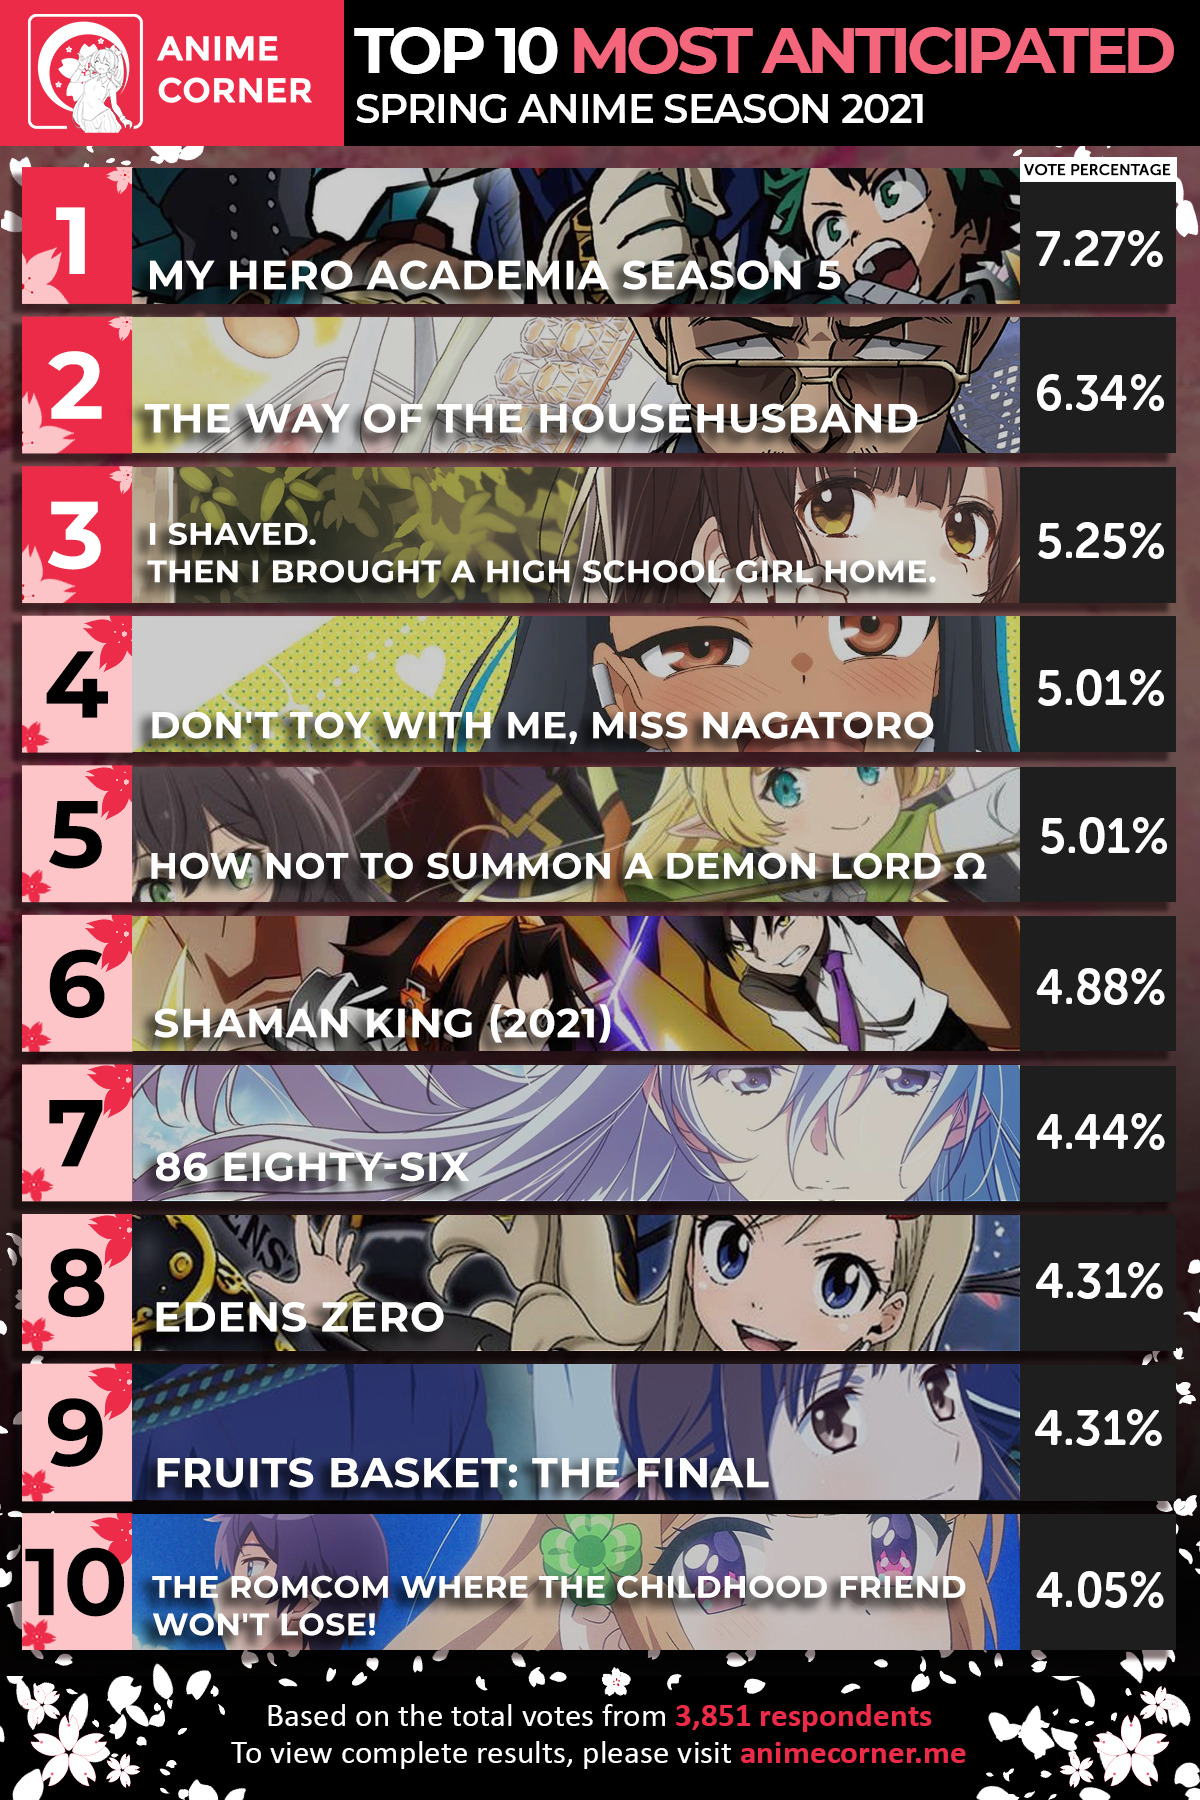 Top 10 Most Anticipated Anime of Spring 2021 | Seasonal Anime Survey | Based on the data collected from 3,851 respondents